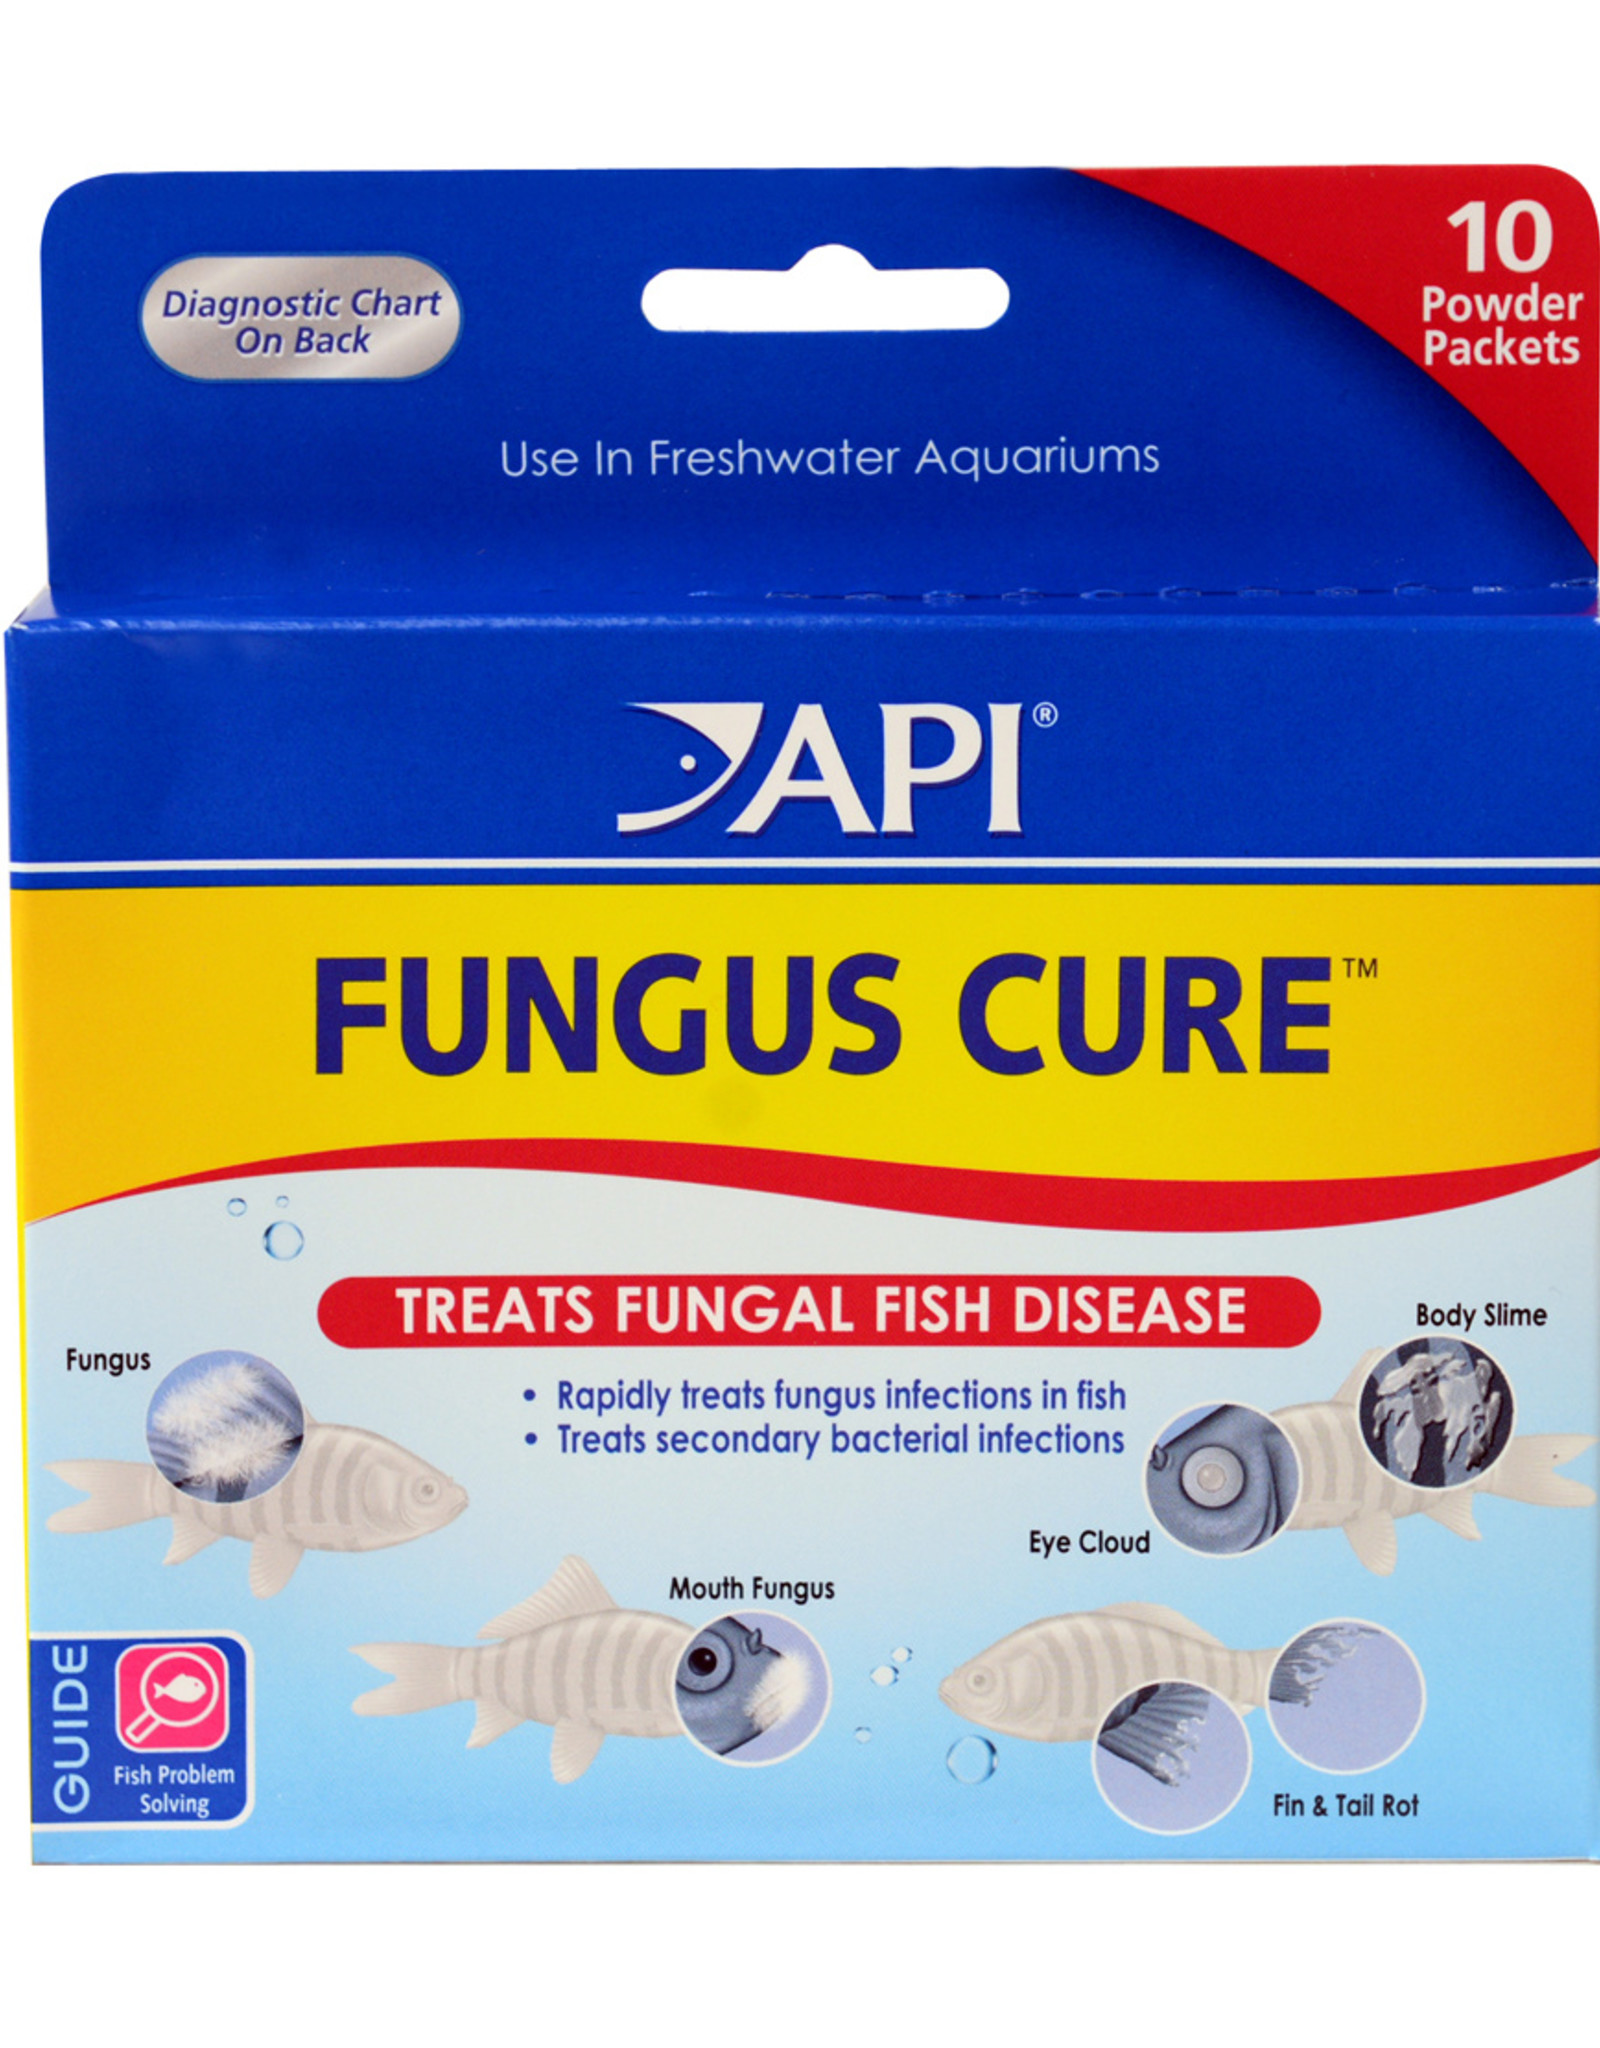 MARS FISHCARE NORTH AMERICA IN API FUNGUS CURE POWDER PACKETS